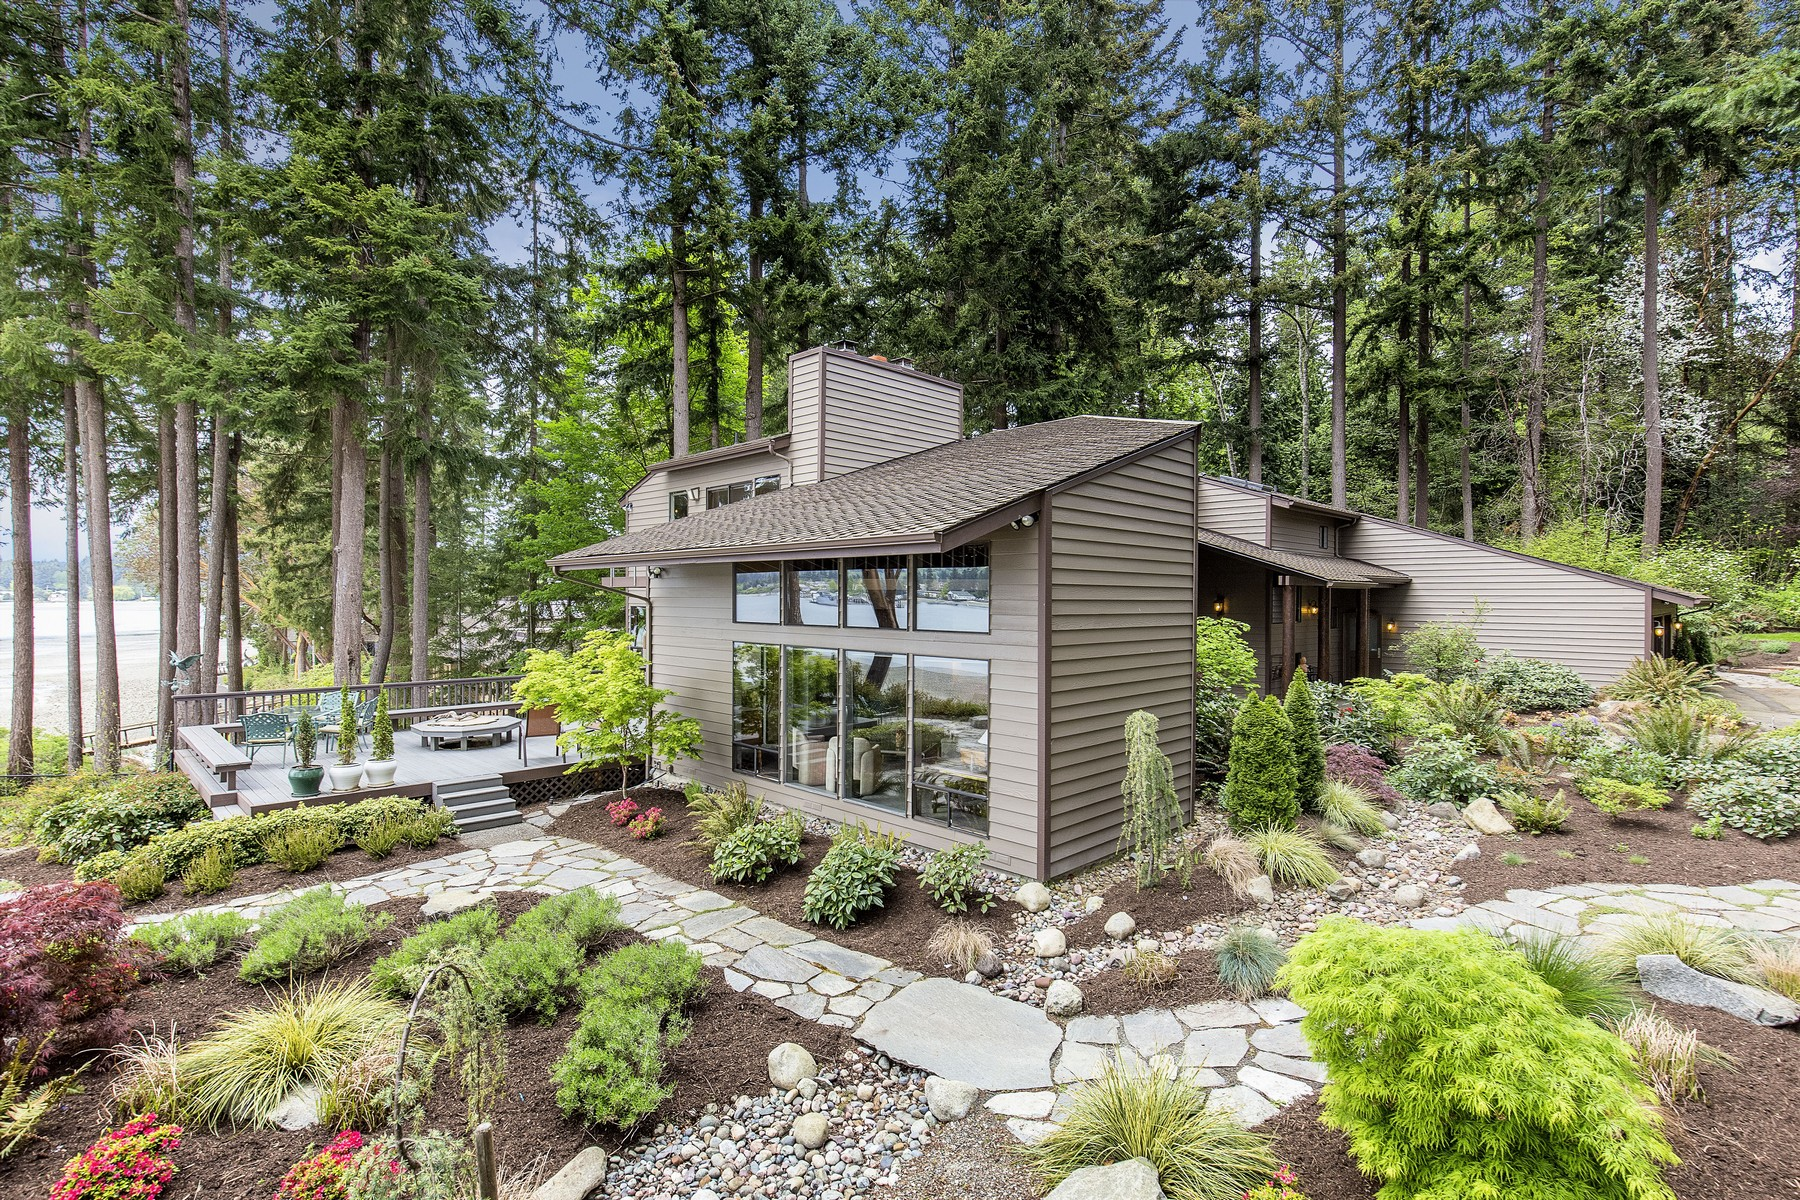 Single Family Home for Sale at NW Contemporary Waterfront 15985 Lemolo Shore Dr NE Poulsbo, Washington 98370 United States